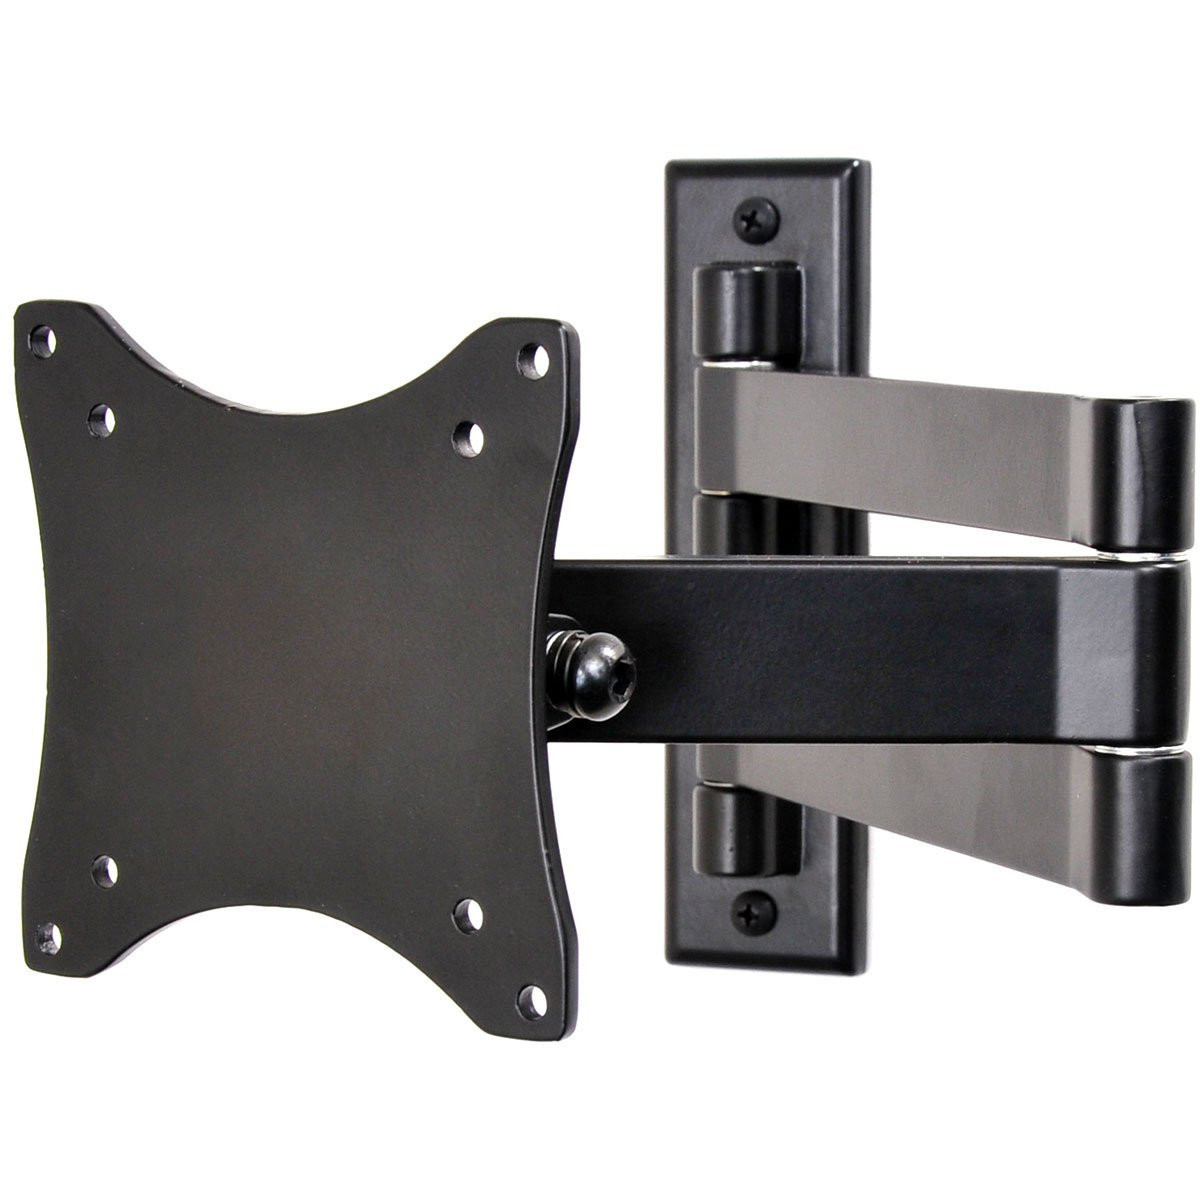 Videosecu Articulating Tv Wall Mount Bracket For Sansui 19 29 Led Tilt Swivel Sled1937 Sled2237 Sled2400 Sled2800 Bj9